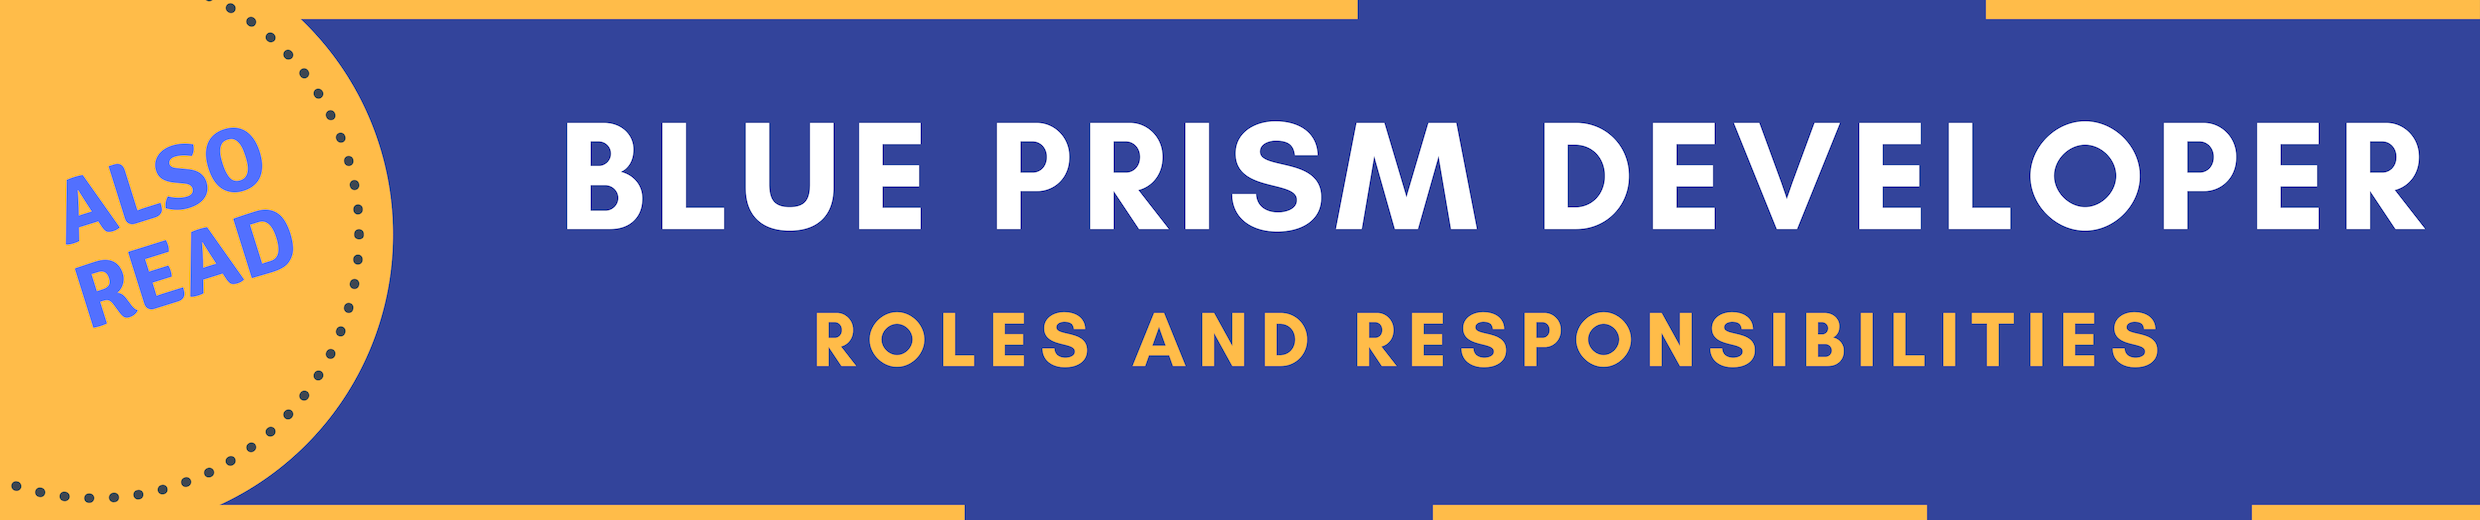 blue prism developer roles and responsibilities